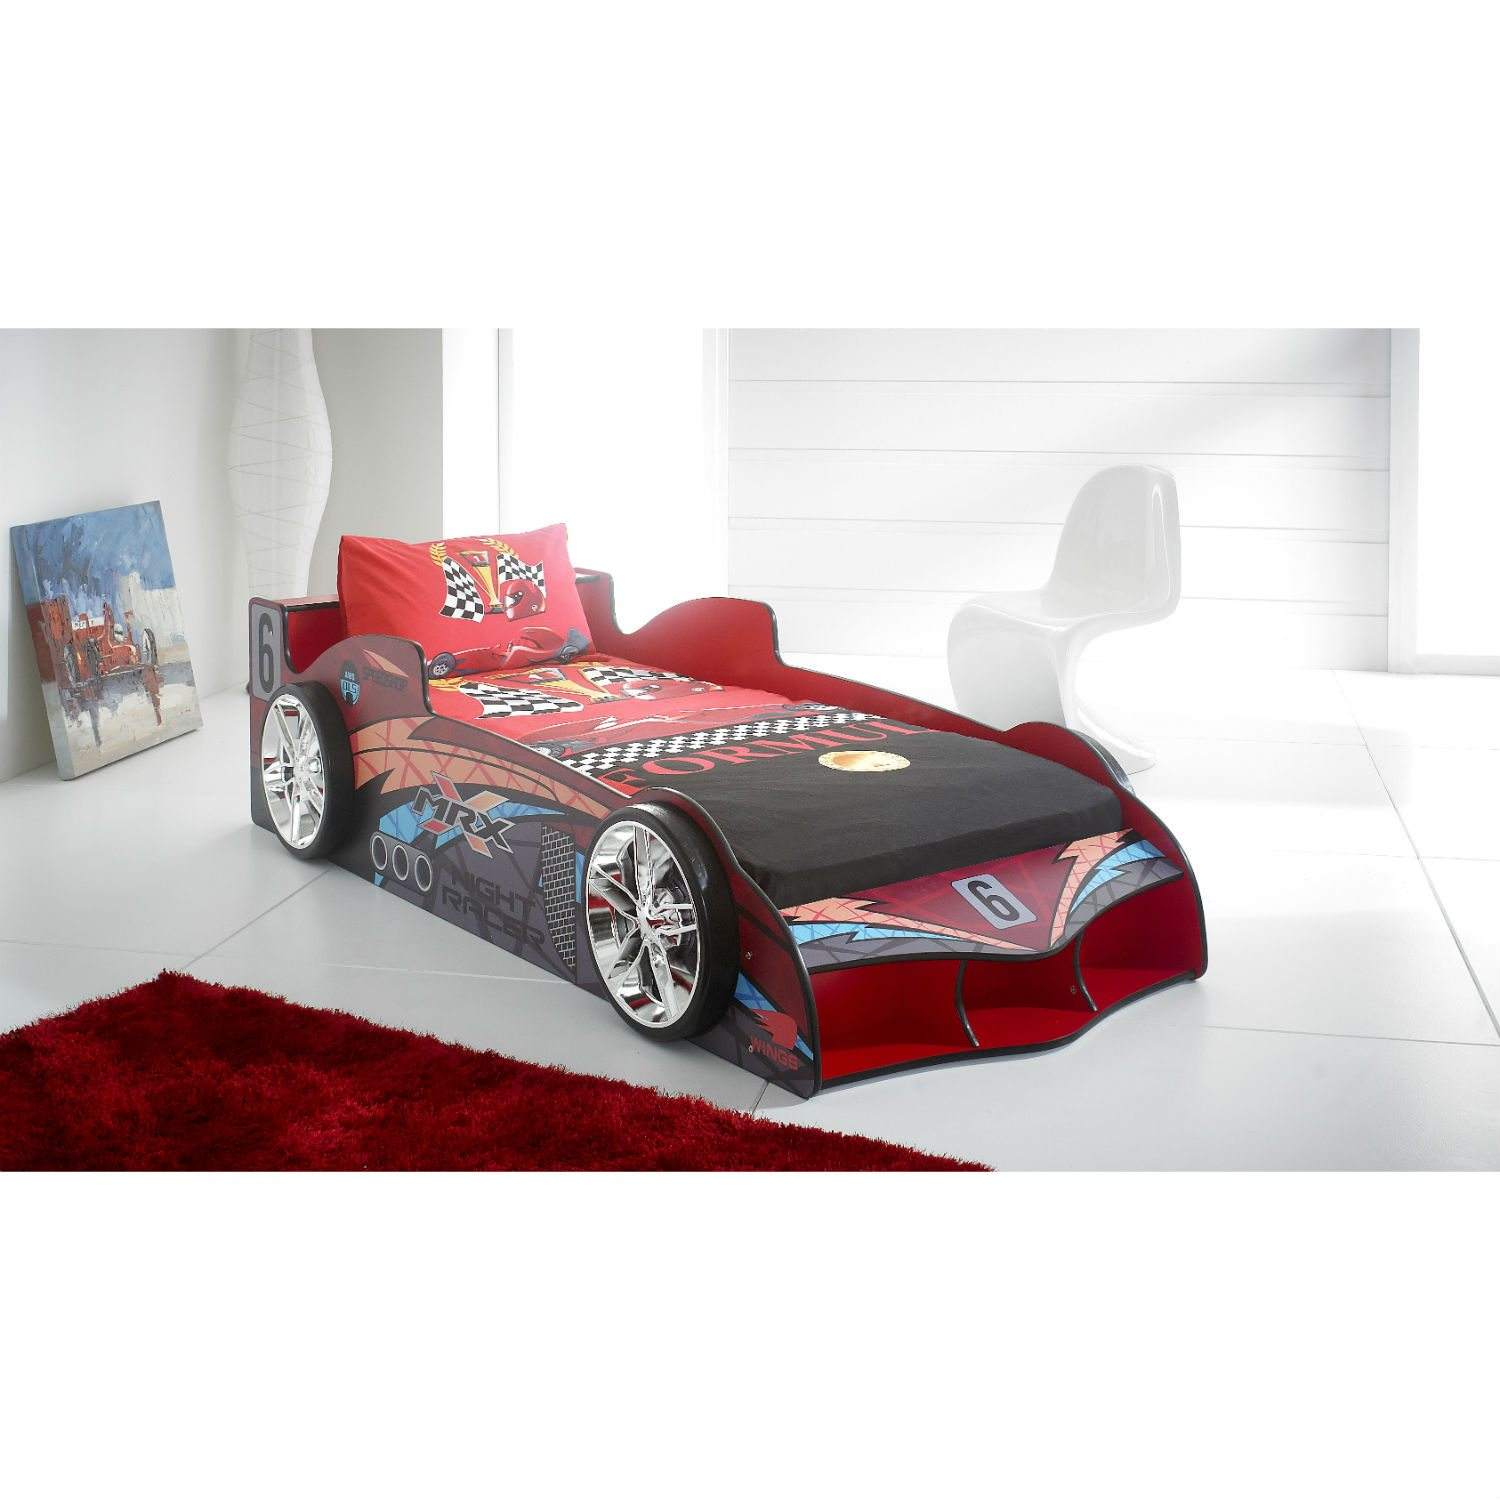 black beds stripes twin delta turbo bed view products car race children room blue